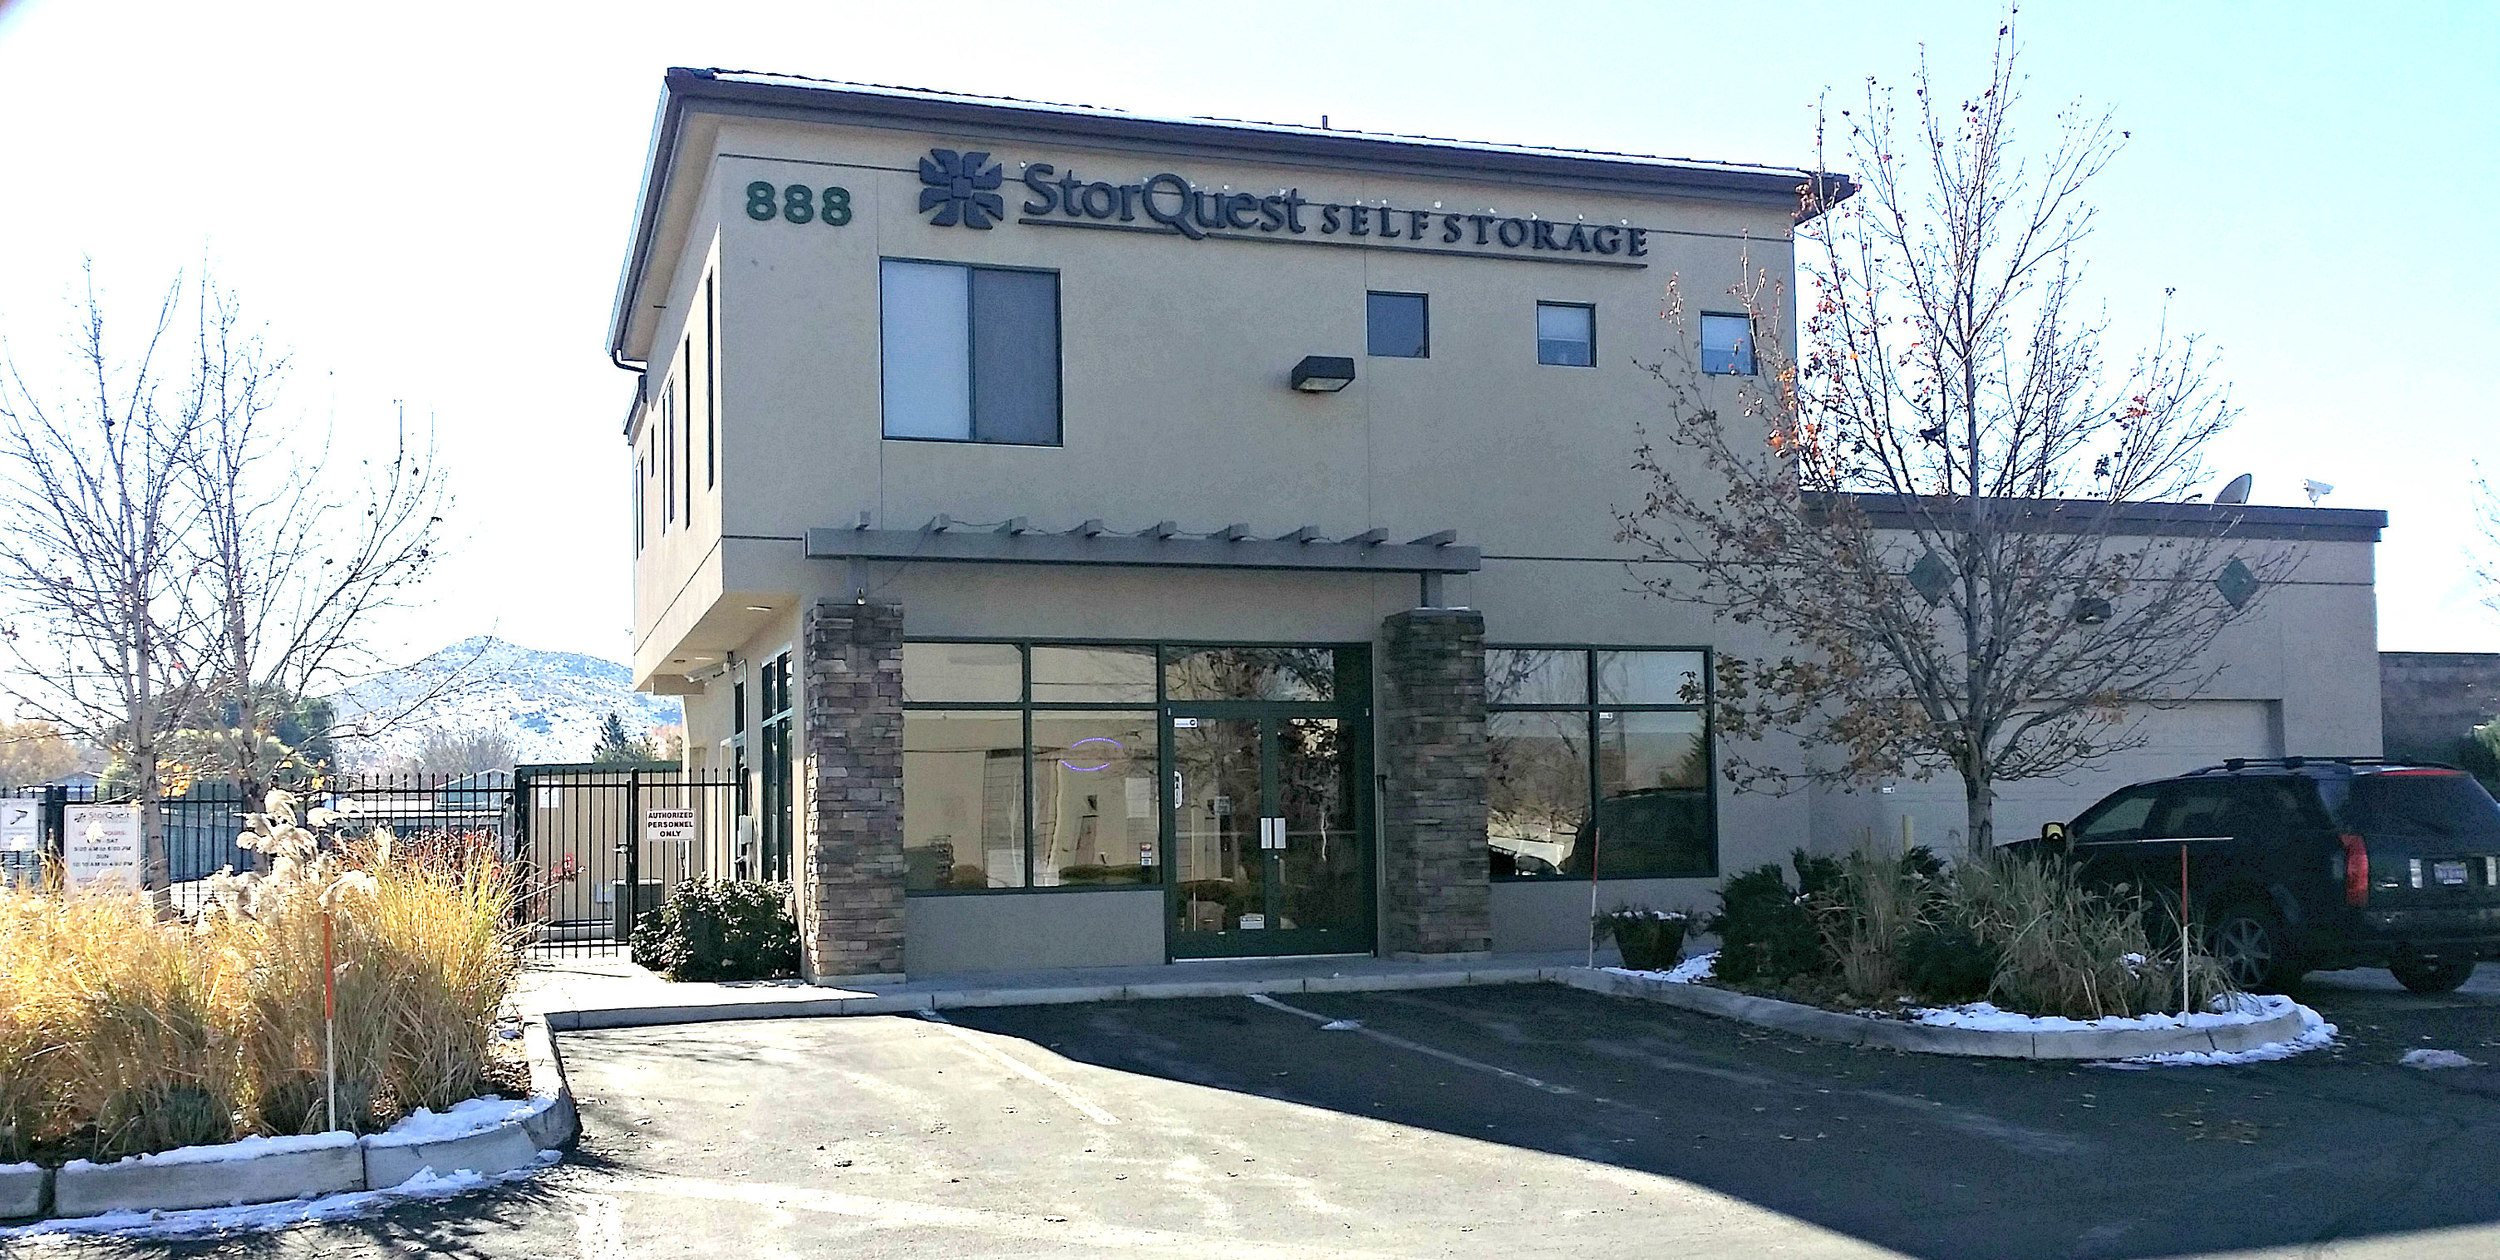 Reno self storage facility